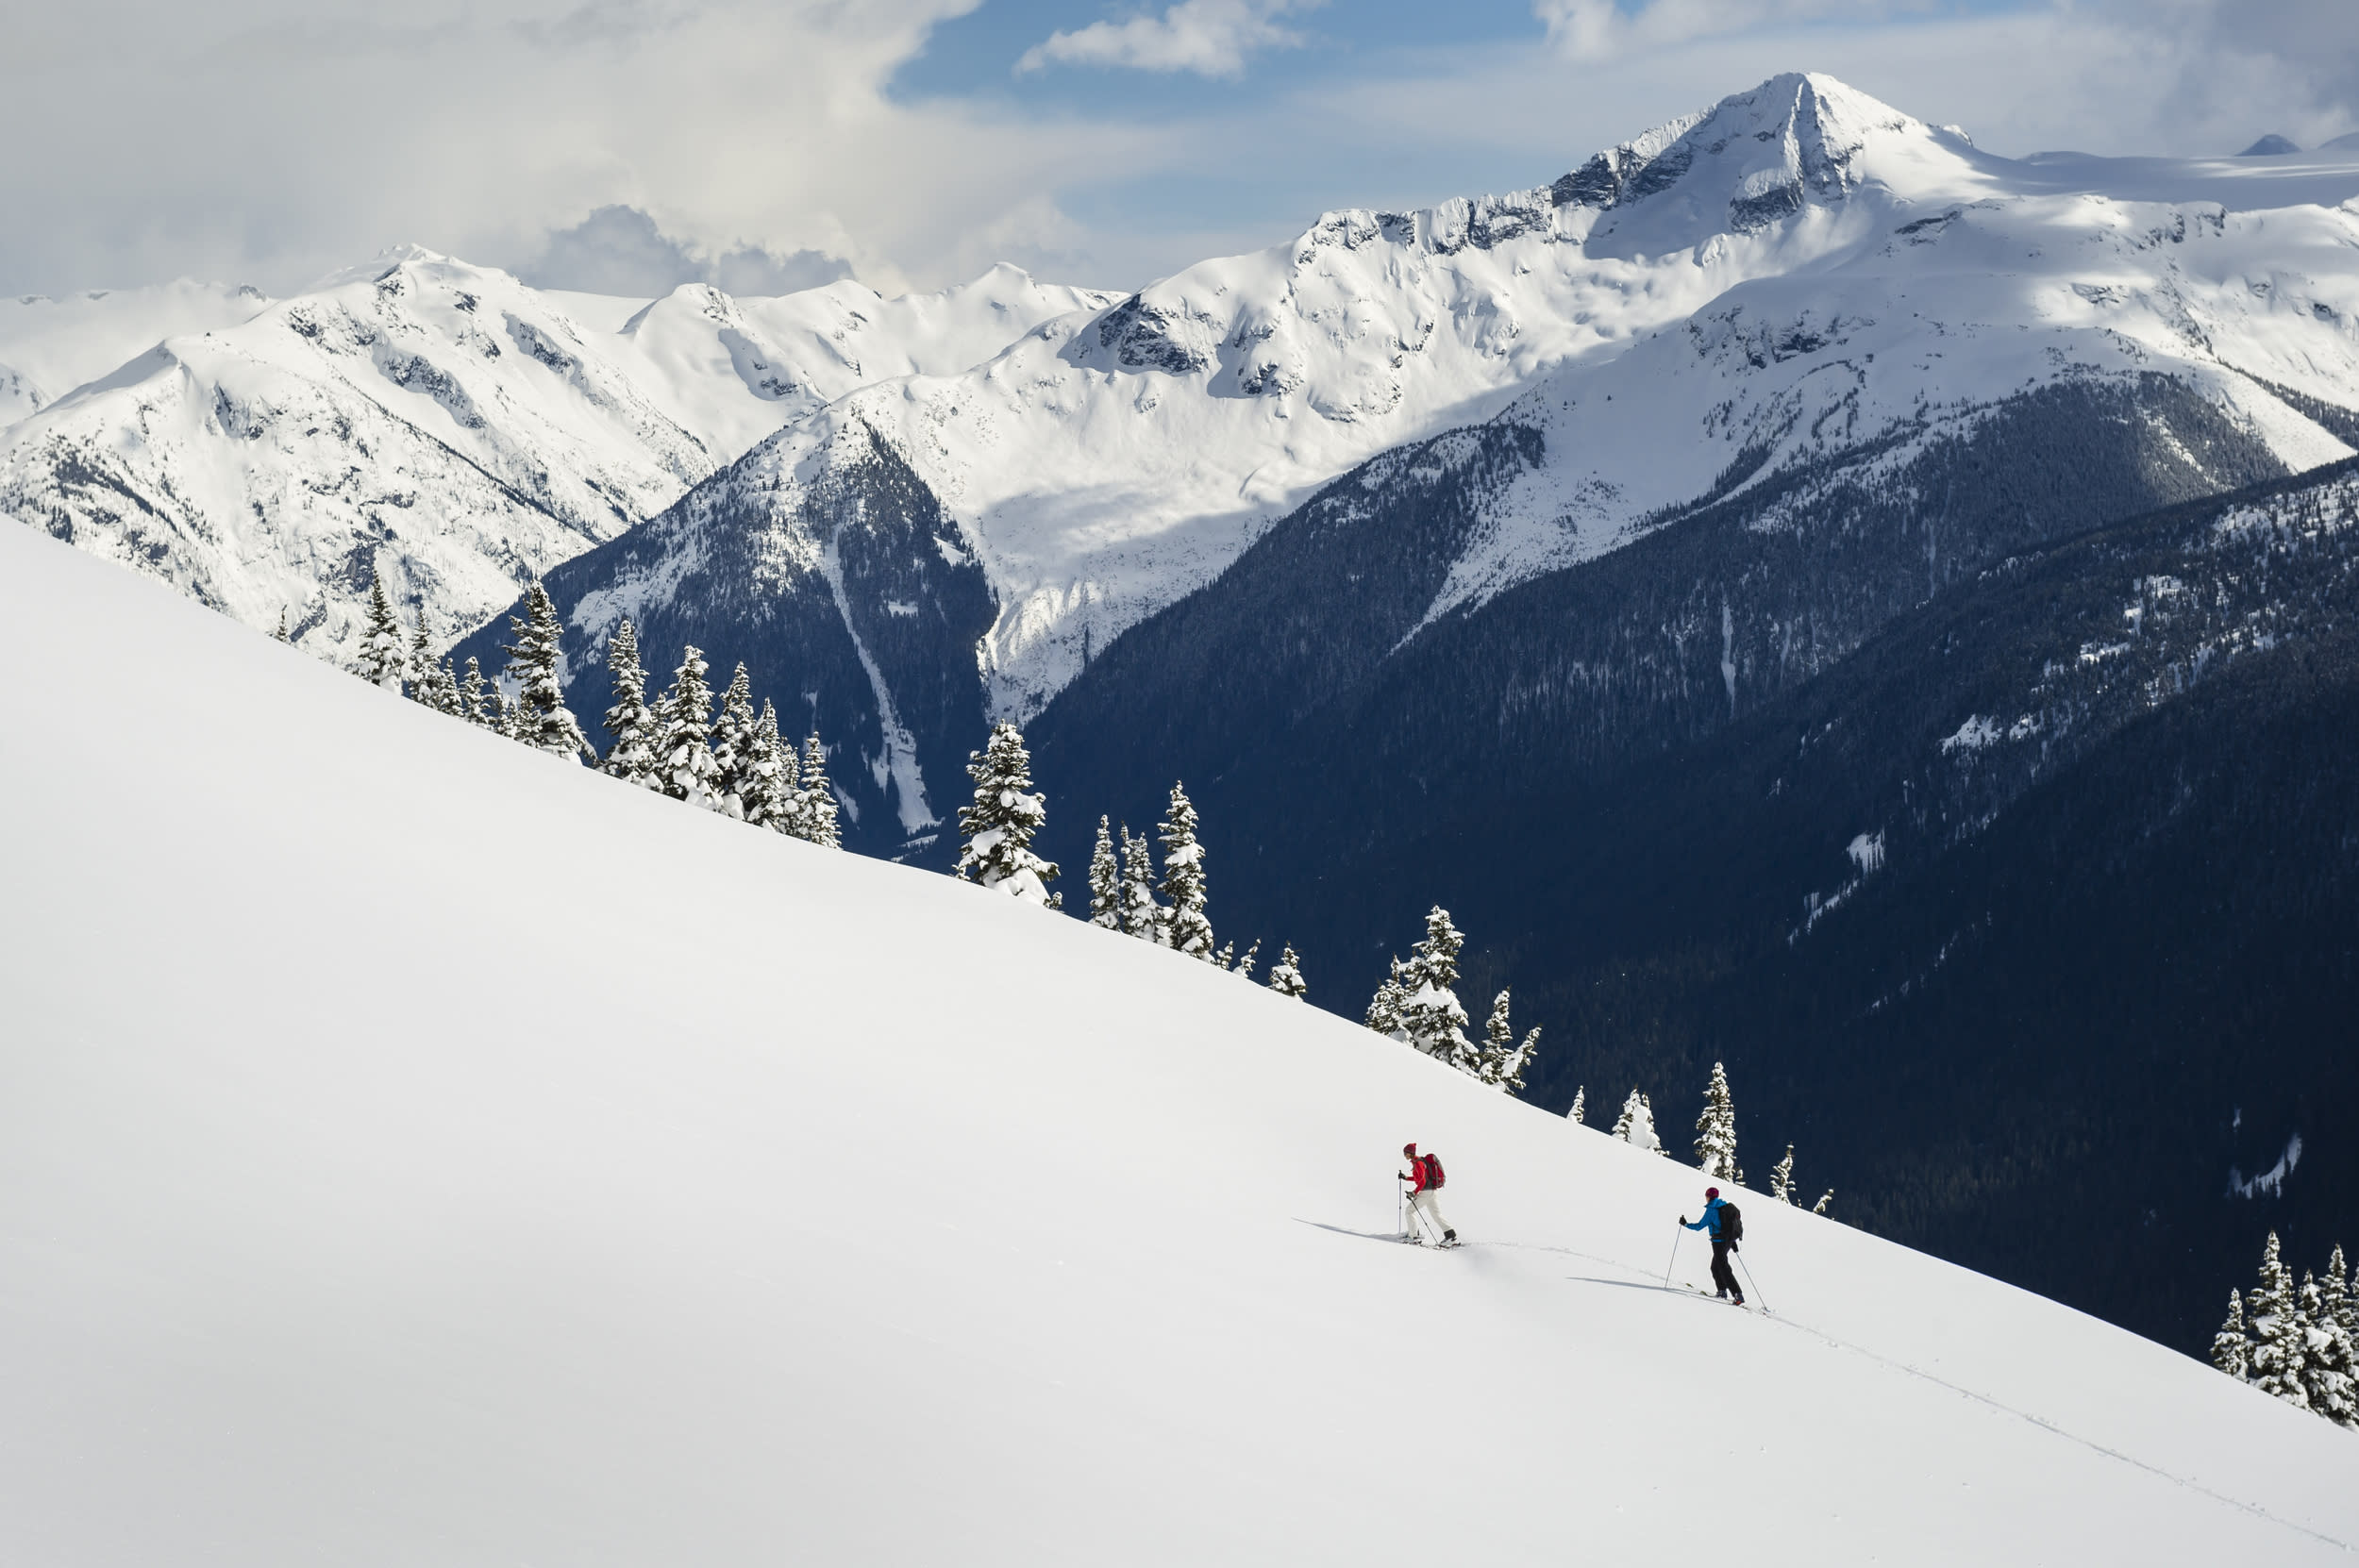 """<p>Whistler is not just a top attraction for skiing and snowboarding in the winter season, take a trip in the summer and enjoy some of the area's fine hiking trails and mountain bike parks.</p>  <p>TripAdvisor recommends the <a href=""""https://www.tripadvisor.co.uk/AttractionProductDetail?product=29098P1&d=1549388&aidSuffix=tvrm&partner=Viator"""" target=""""_blank"""">Whistler Peak 2 Peak Gondola</a>, from £32 per person.</p>"""